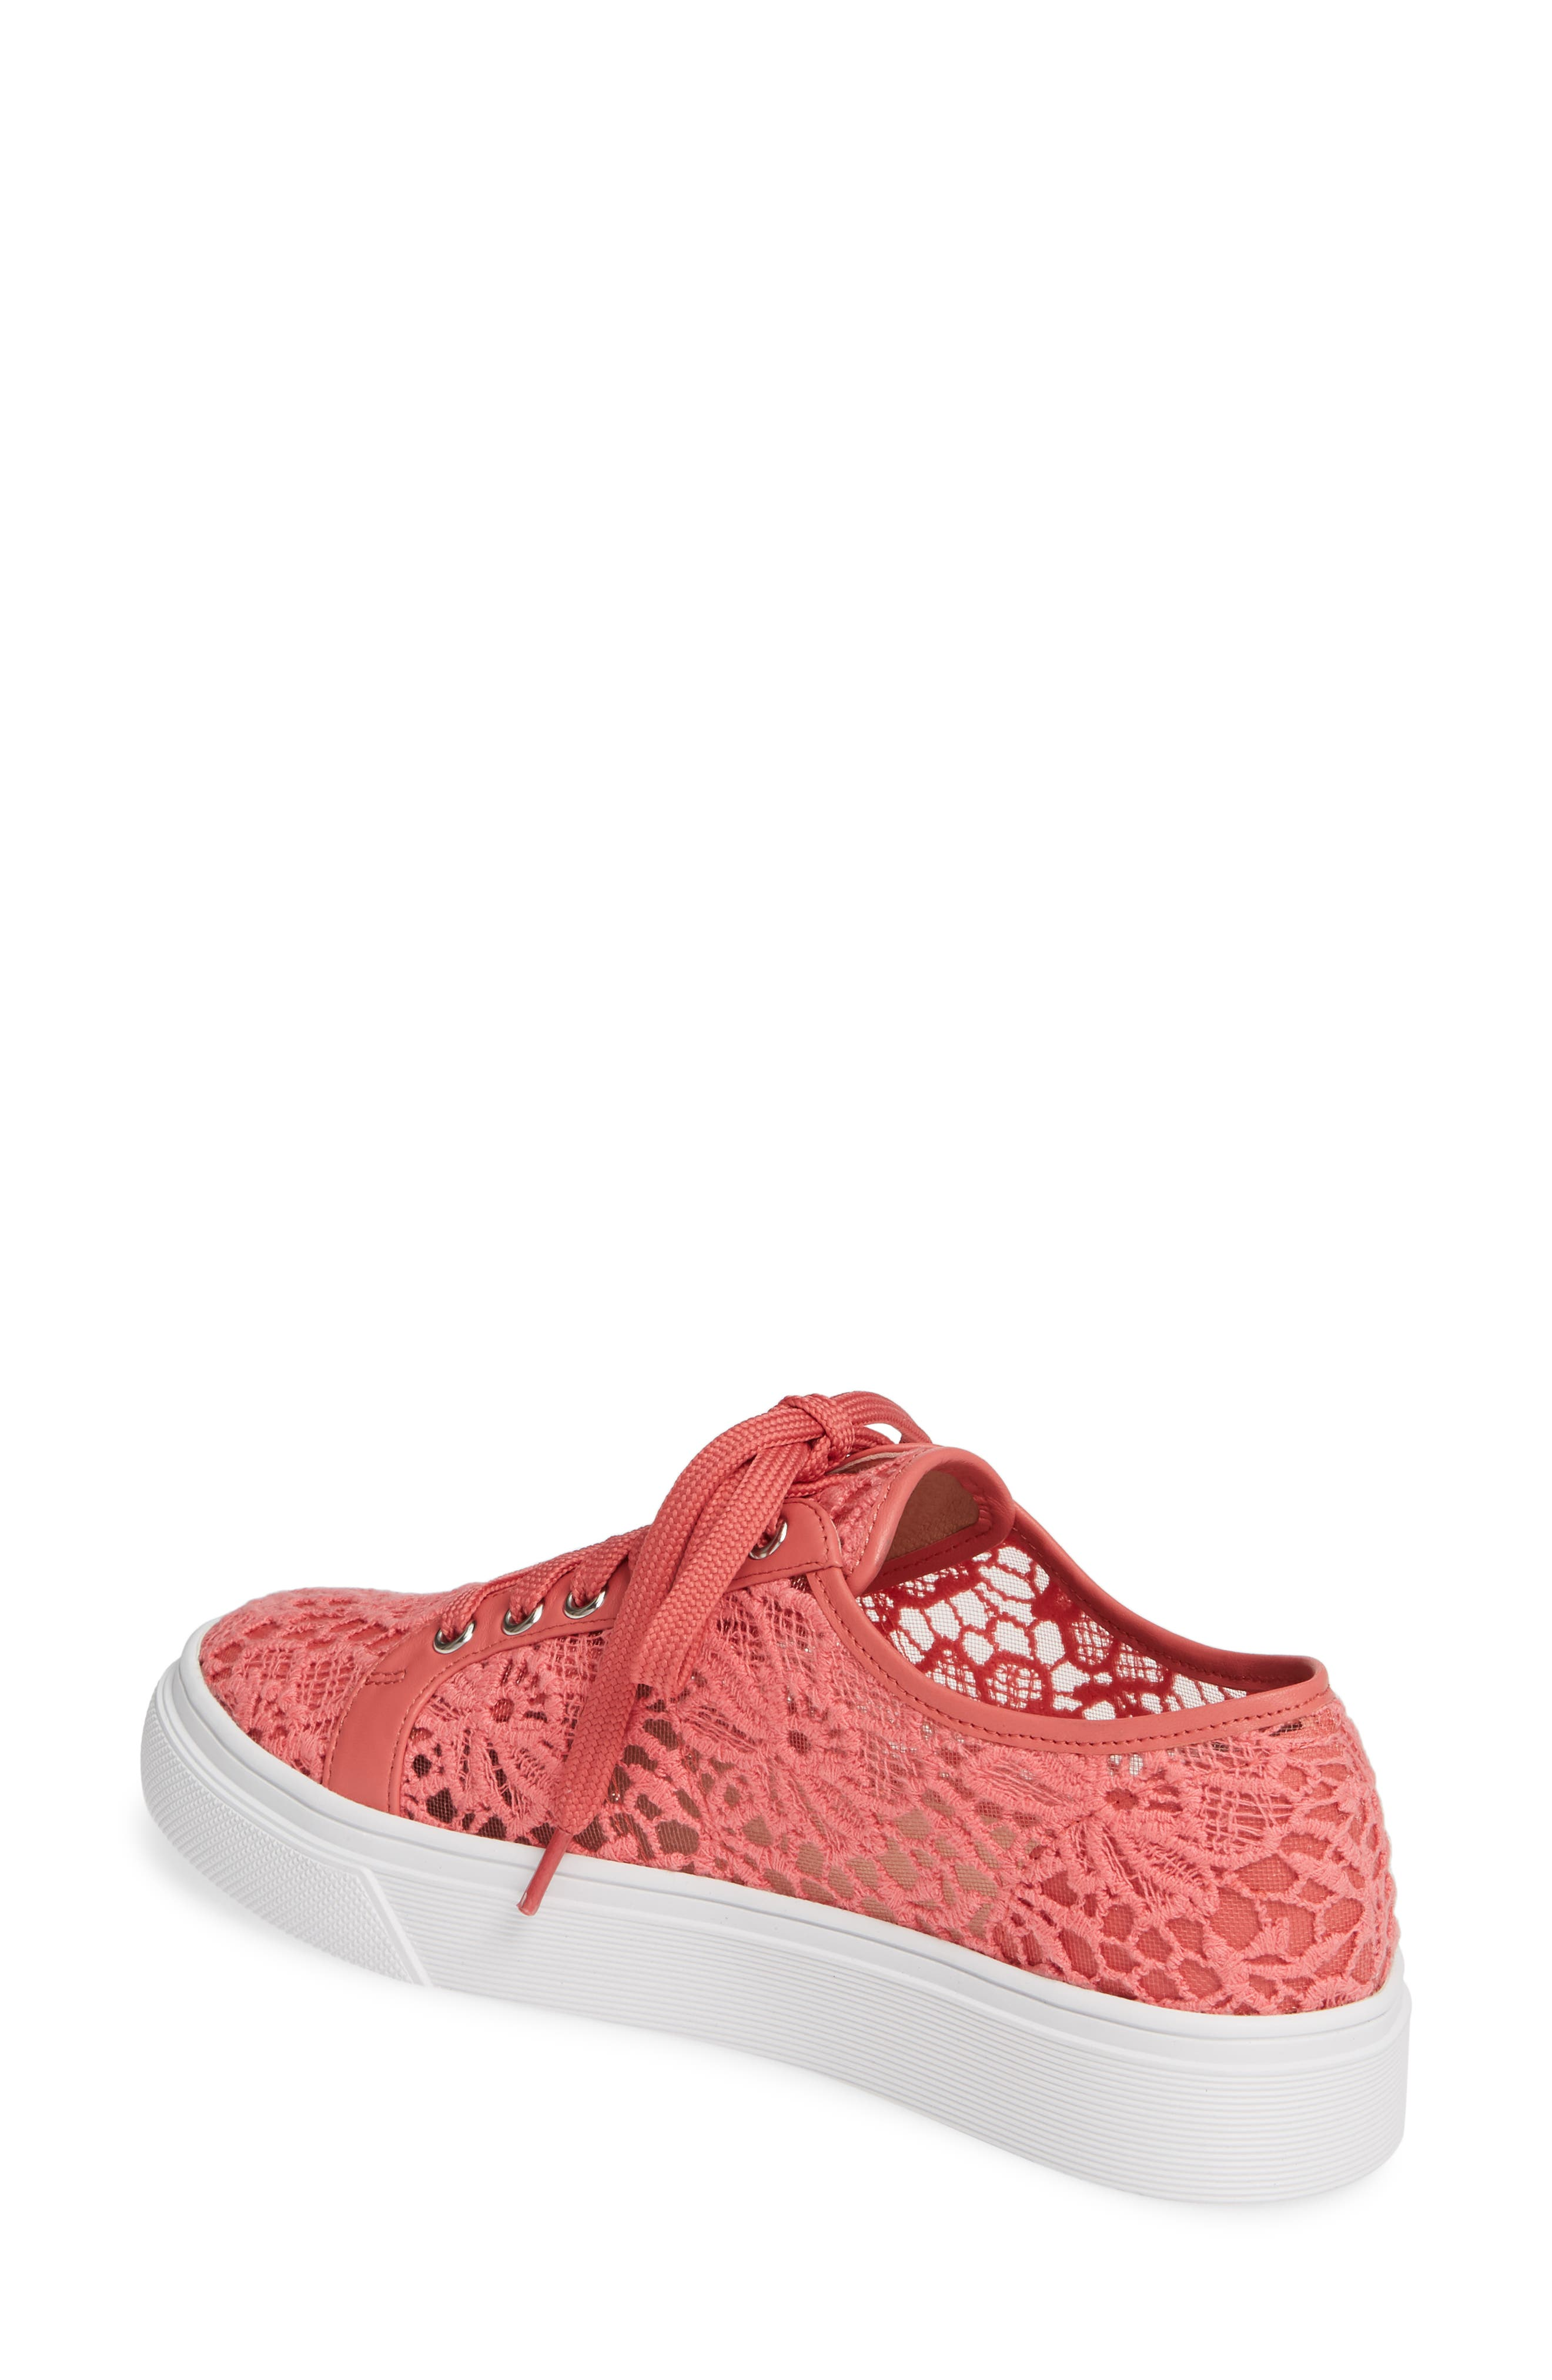 2c516f9b39f Sneakers Caslon® for Women  Clothing